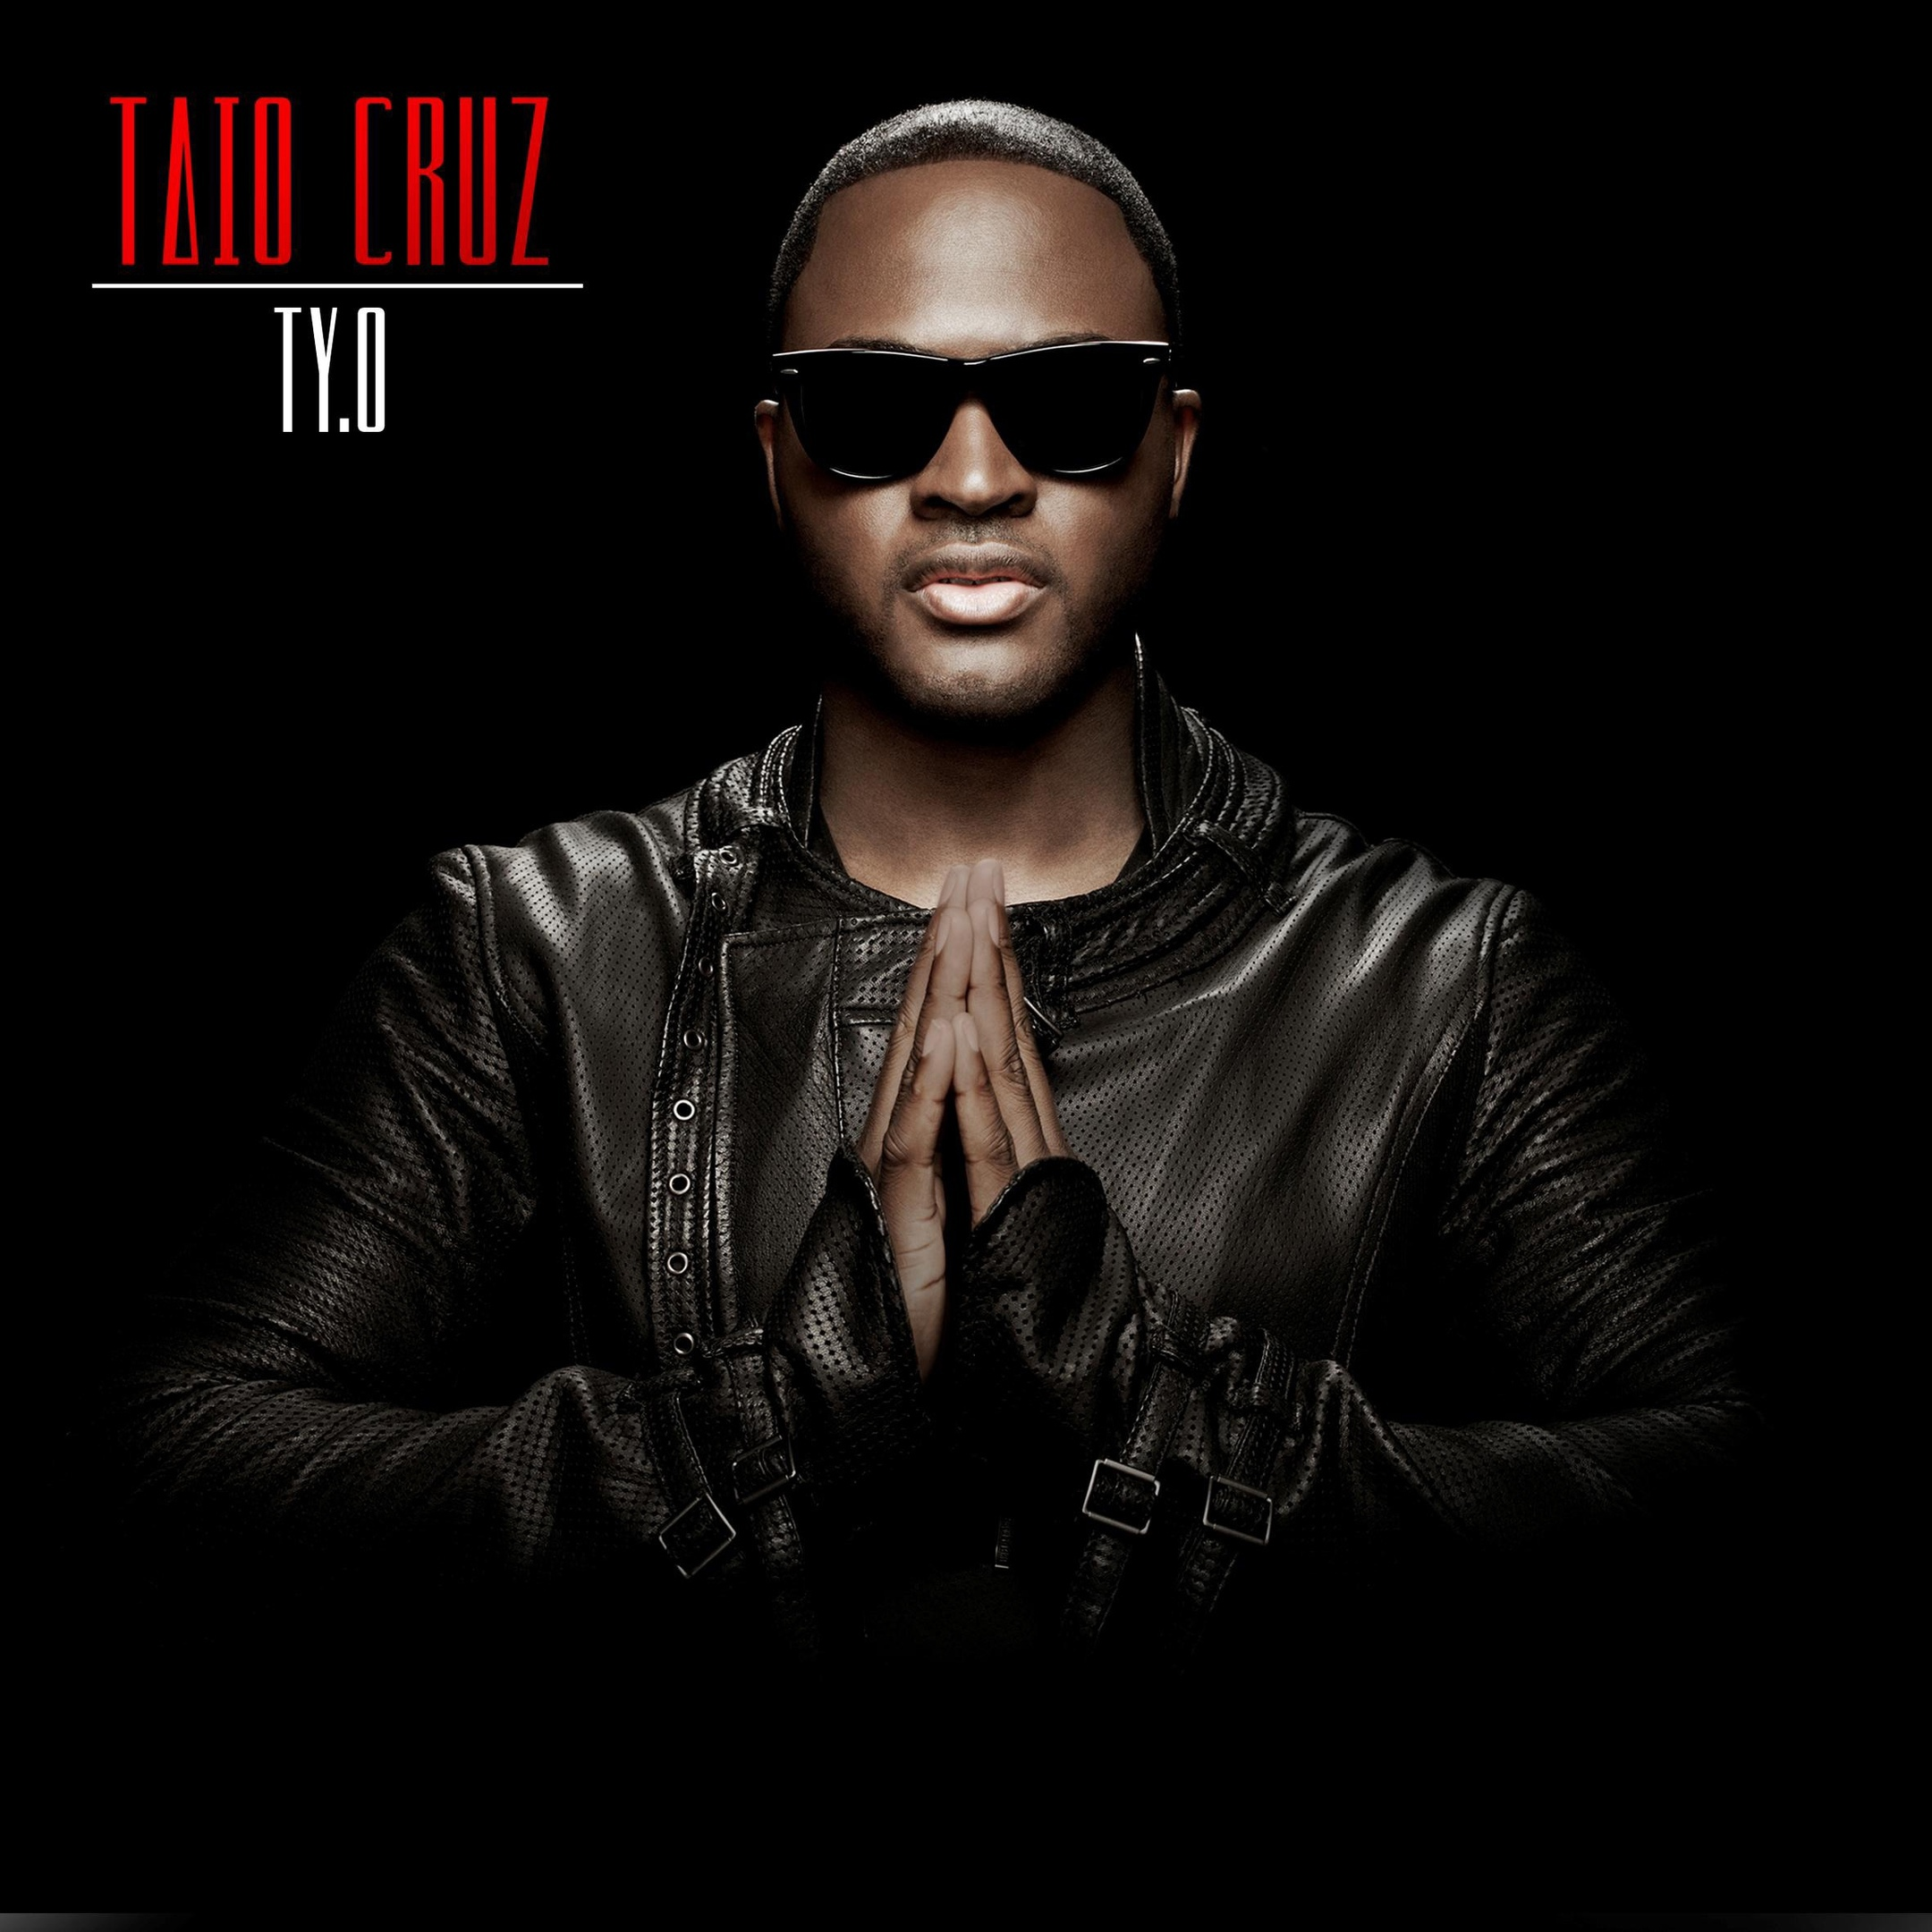 Taio Cruz album TY.O